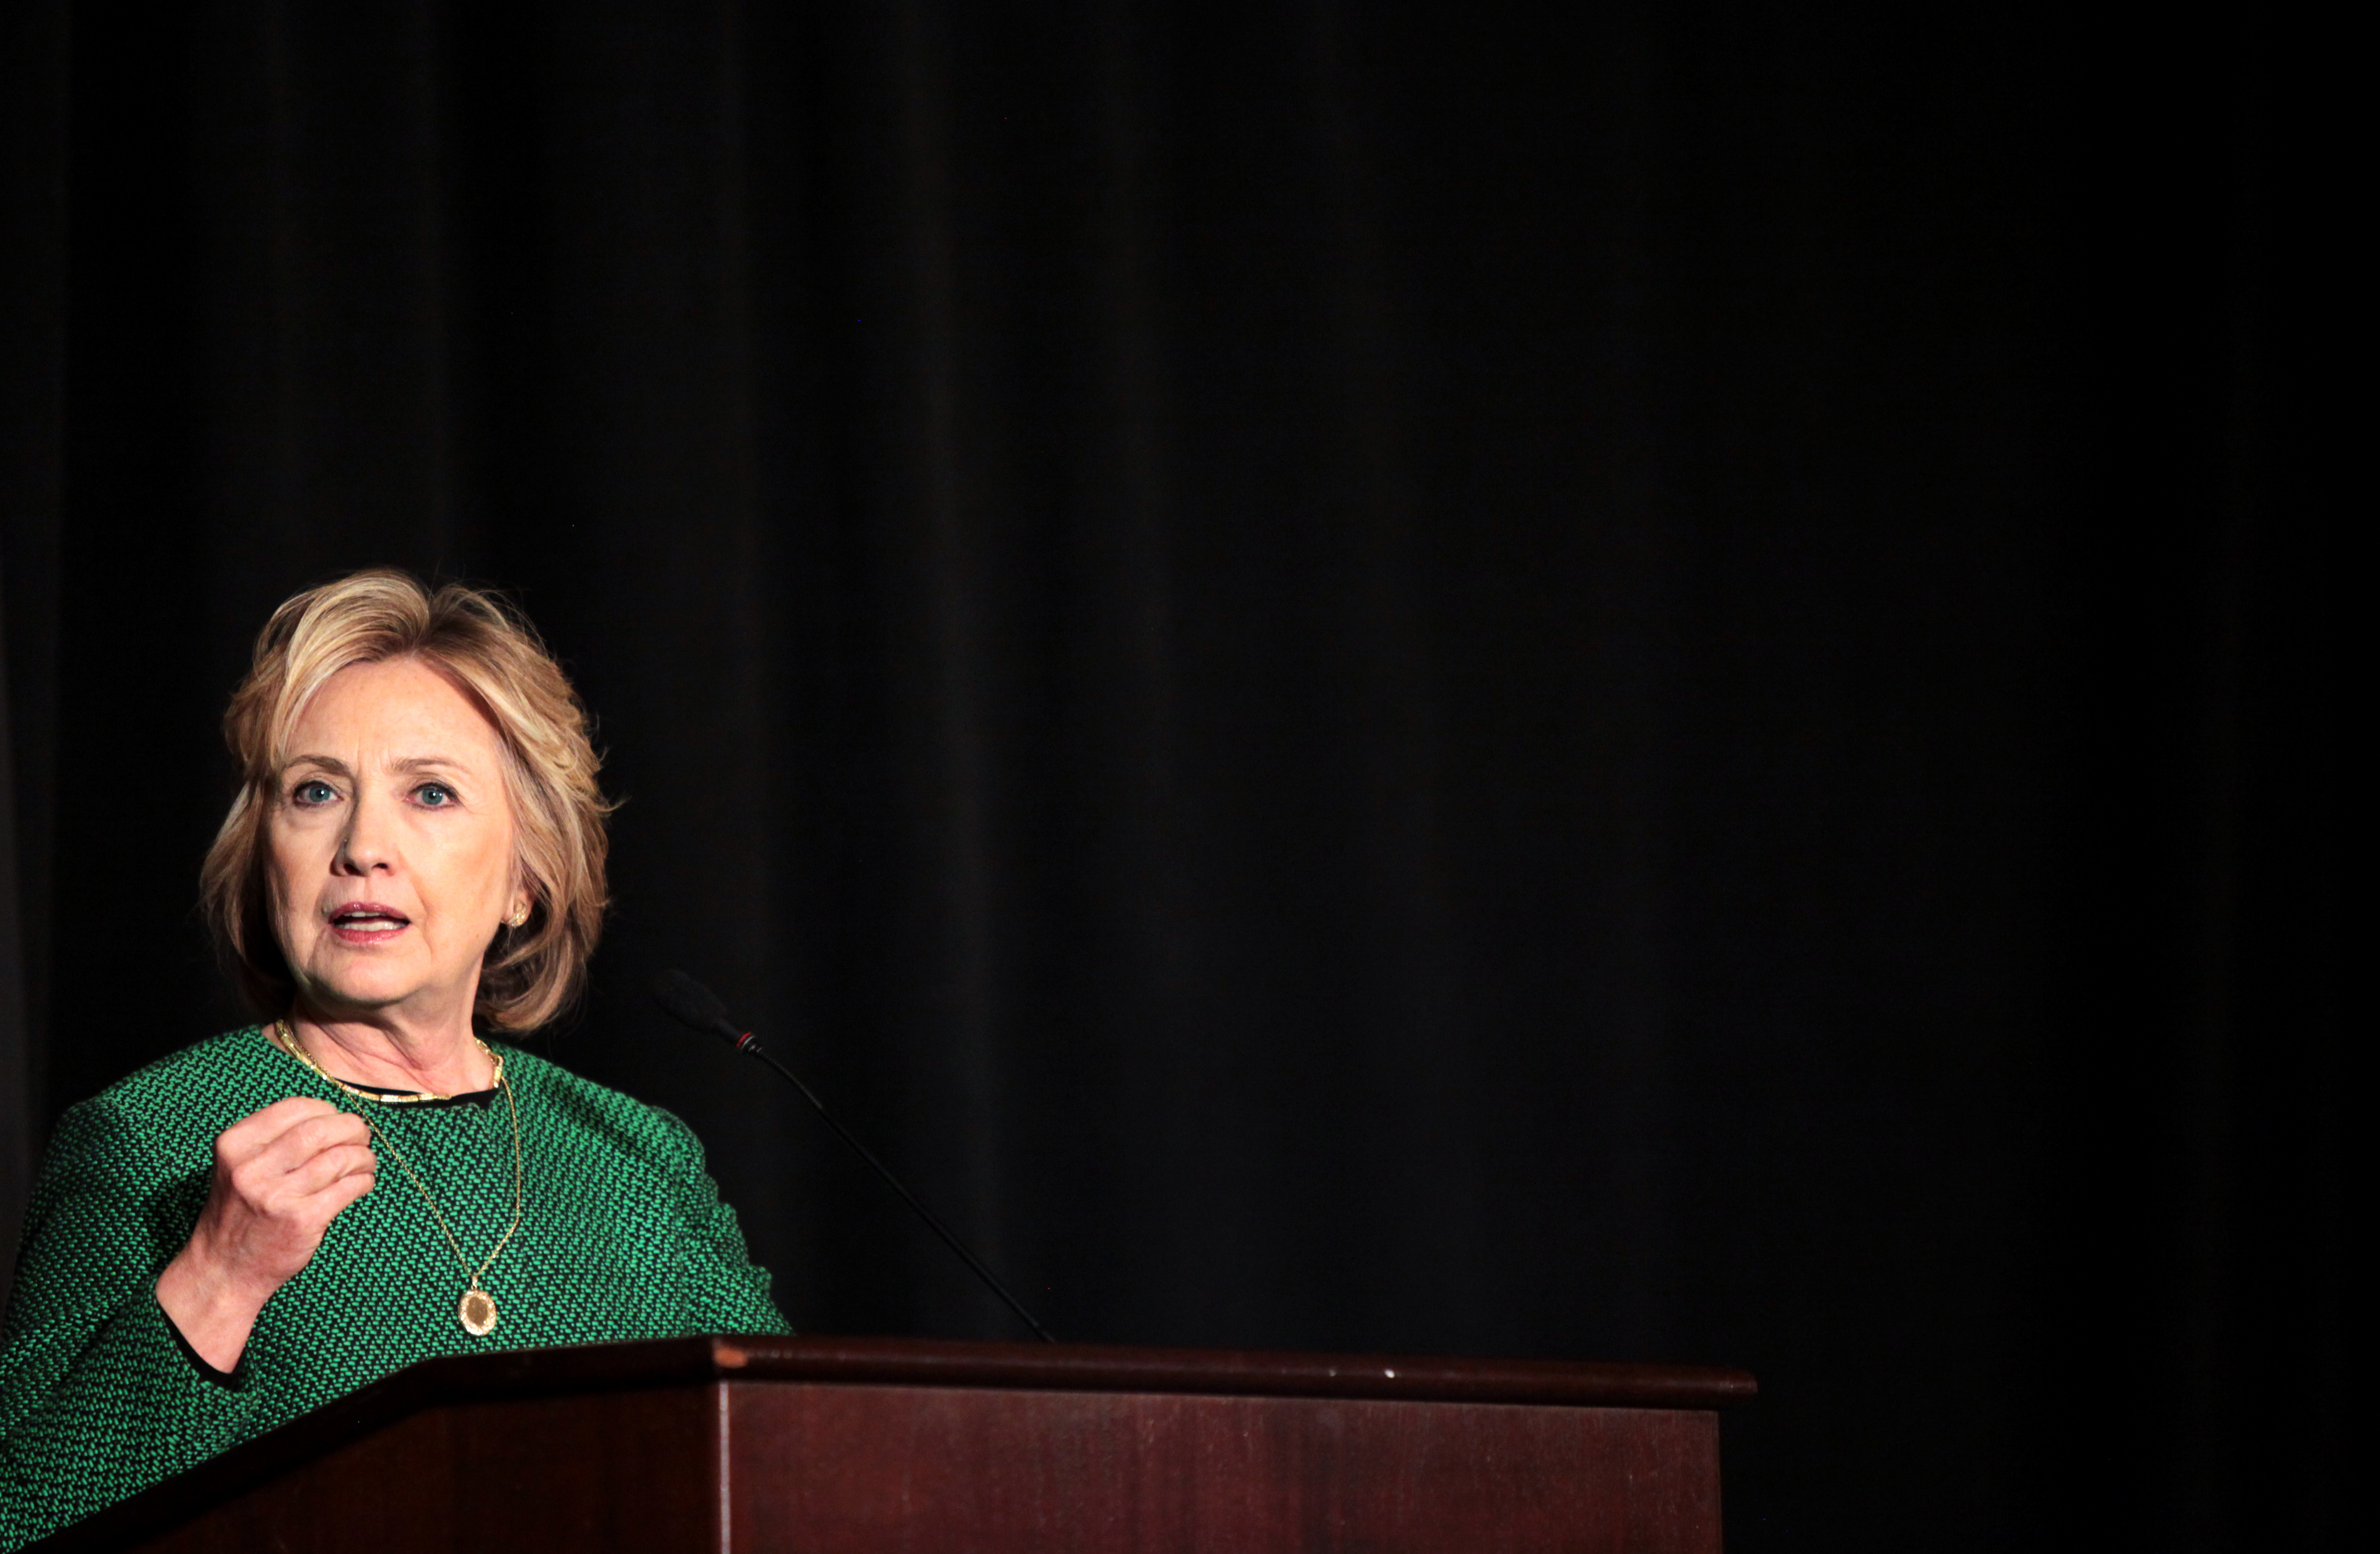 Former Secretary of State Hillary Clinton speaks on stage during a ceremony to induct her into the Irish America Hall of Fame on March 16, 2015 in New York City.